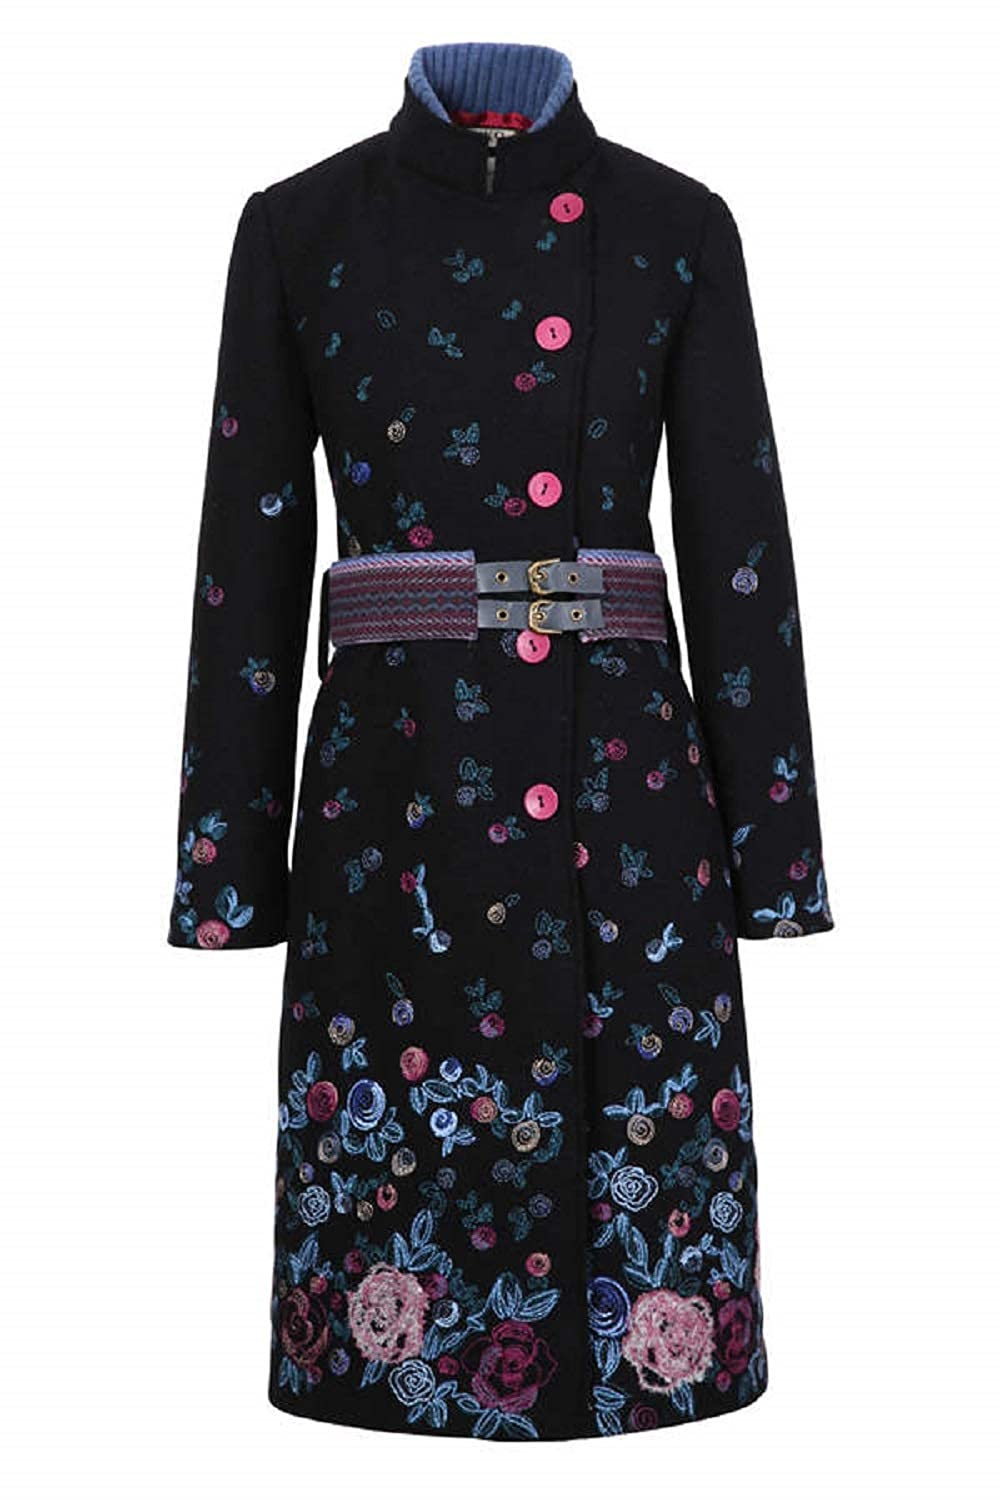 IVKO Boiled Wool Coat with Embroidery 82501 (Black)